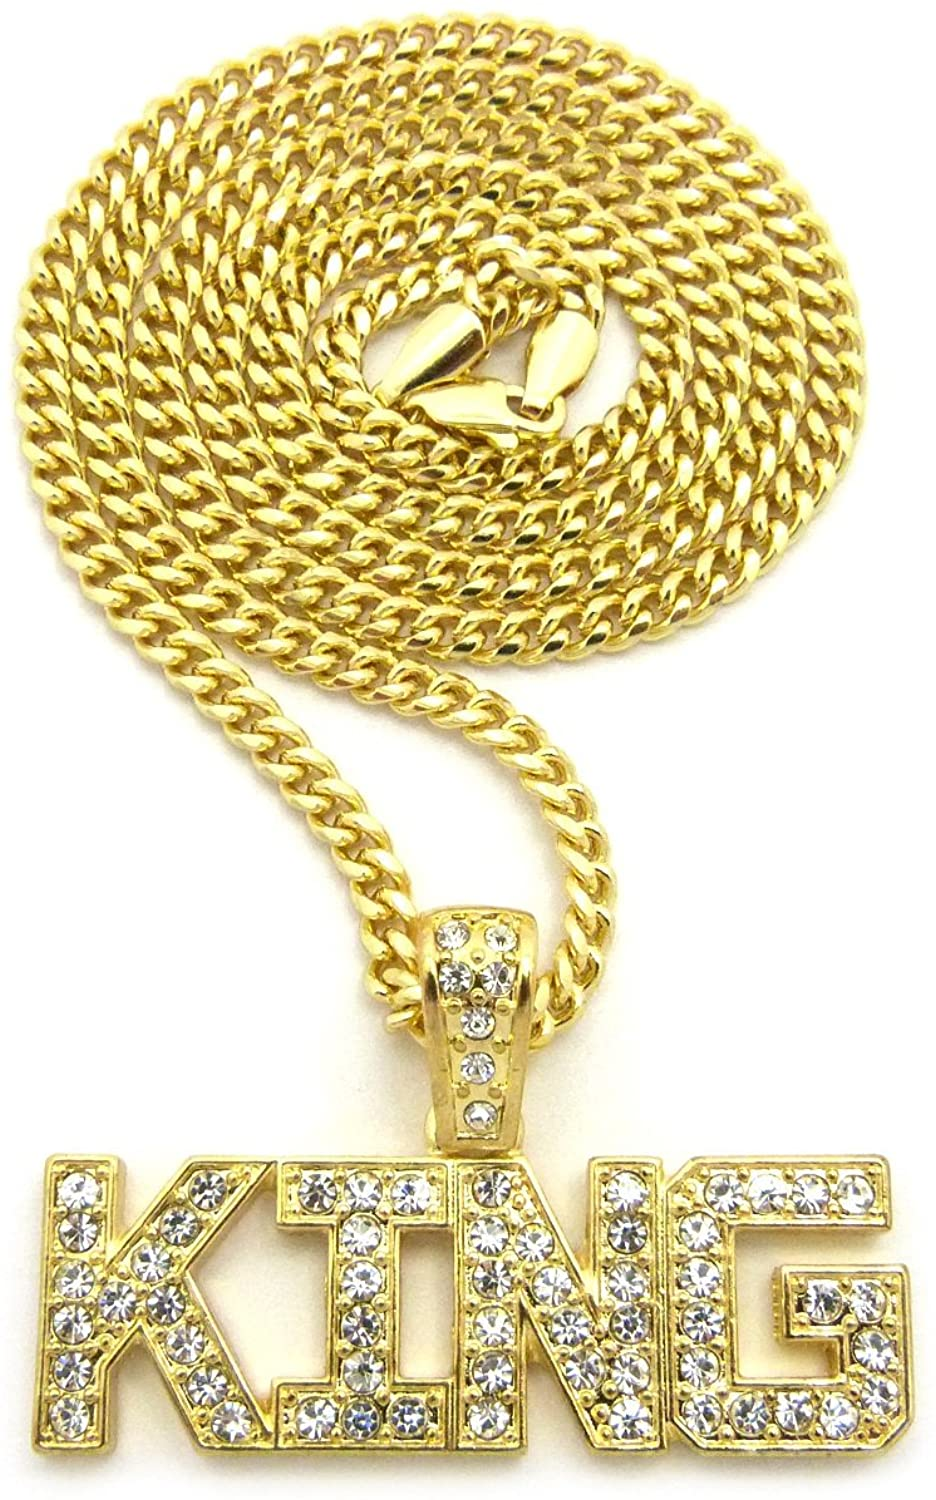 Fashion 21 Hip Hop Micro King Word Pendant Various Chain Necklace in Gold, Silver Tone